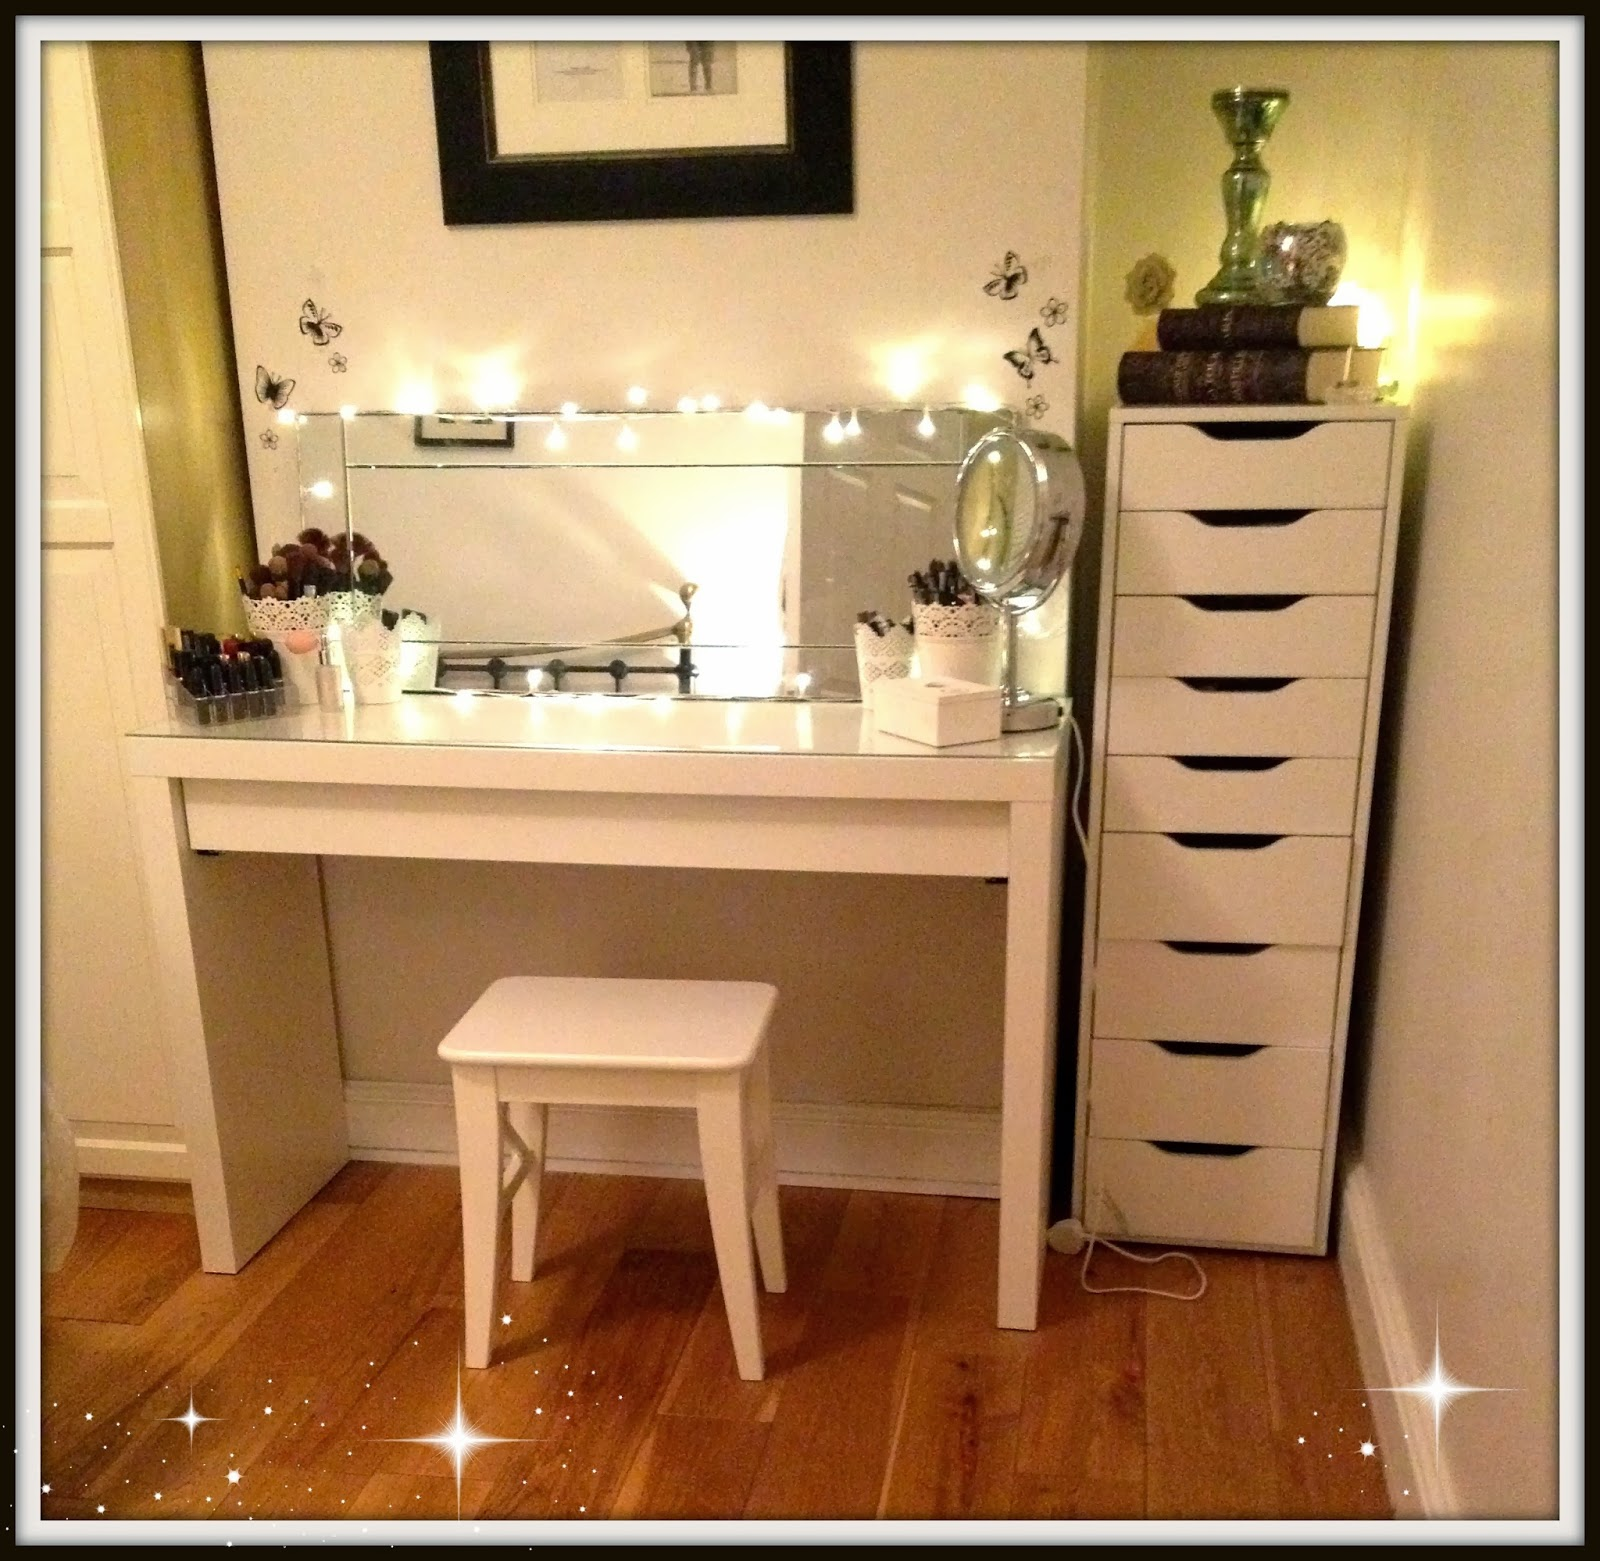 used makeup vanity for sale. Bedroom Vanities For Sale gallery   A1houston com